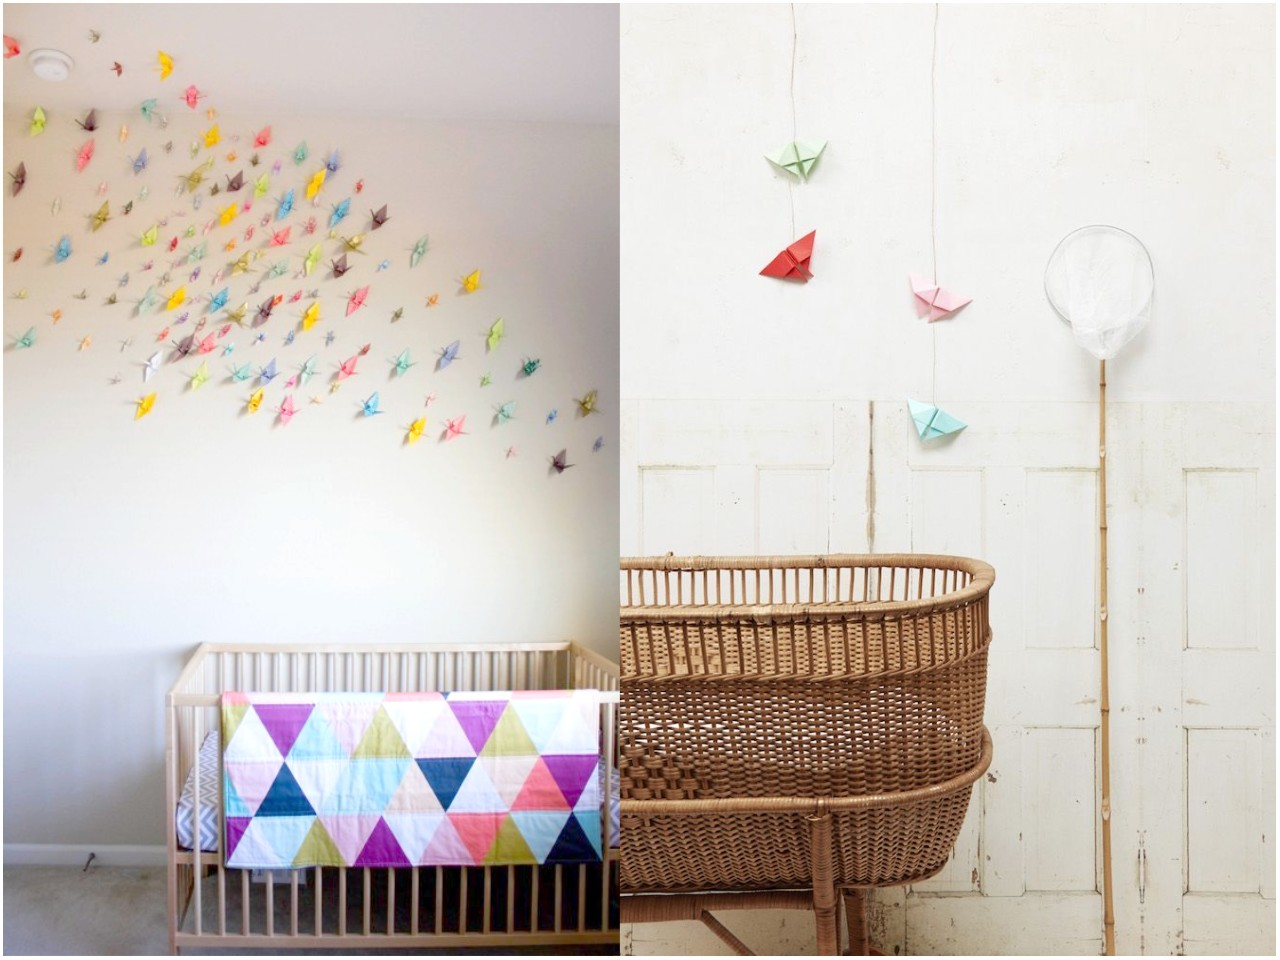 12 ideas econ micas para decorar habitaciones infantiles for Ideas decoracion habitaciones bebes